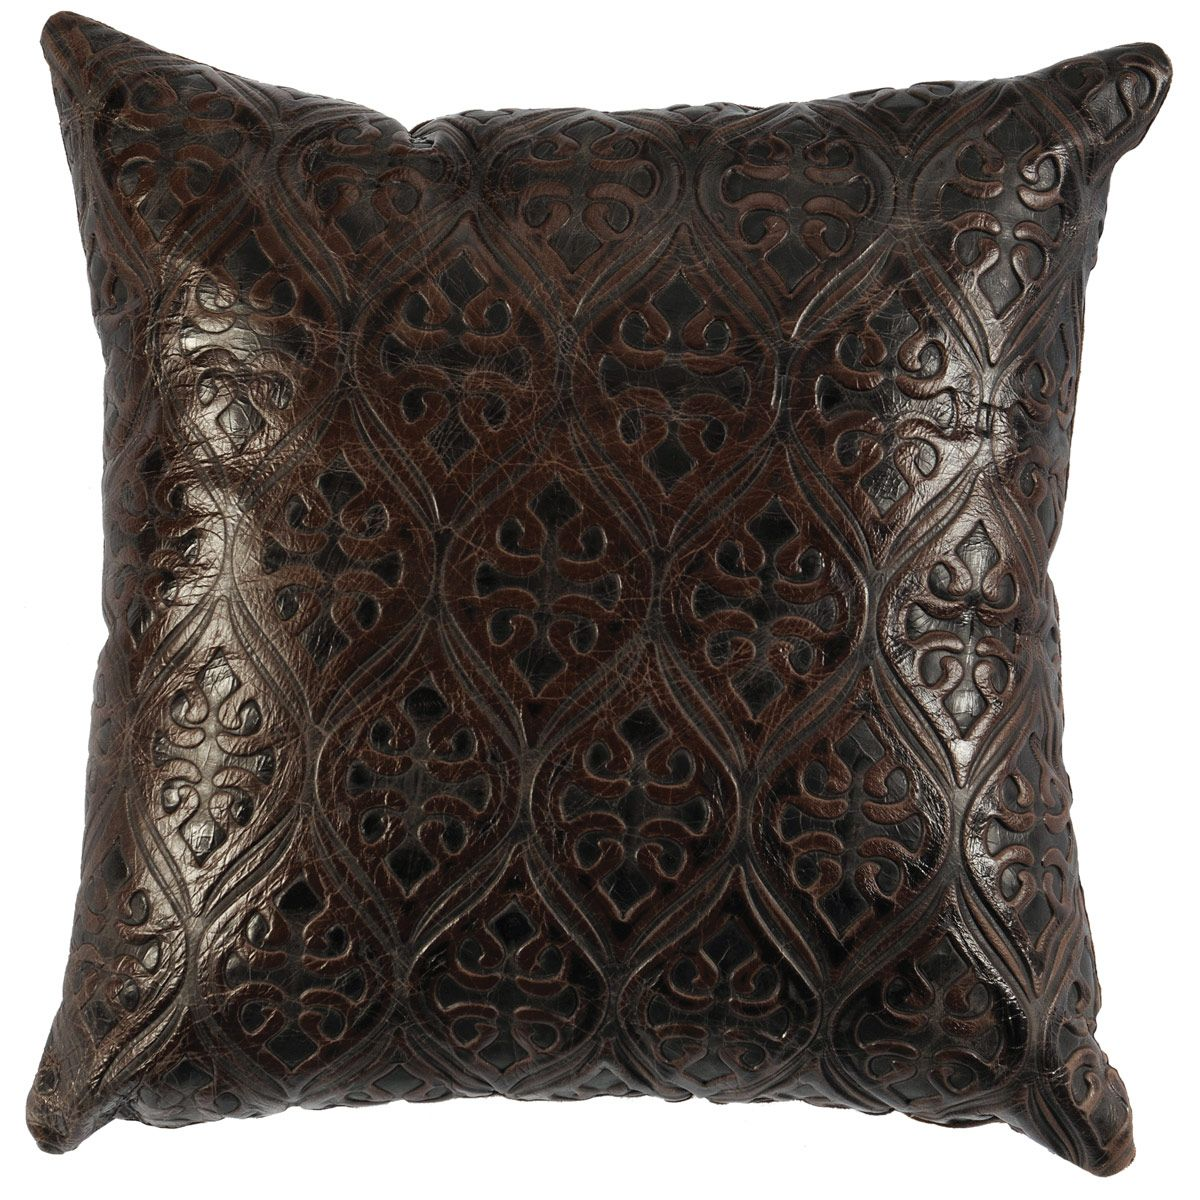 Gateway Embossed Leather Pillow